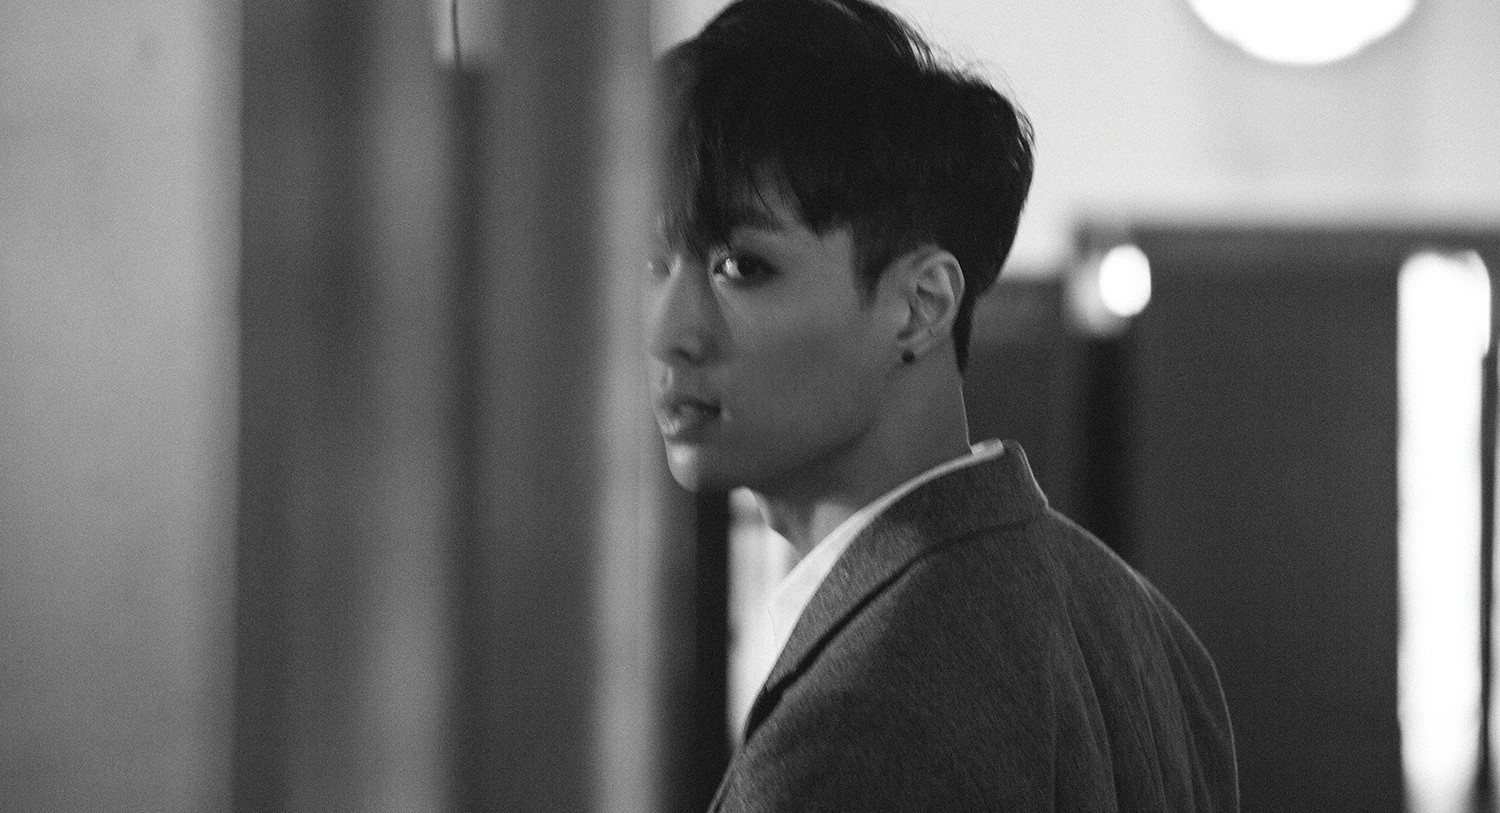 Anti Fans Continue To Harass Exo Lay Accusing Him Of Being